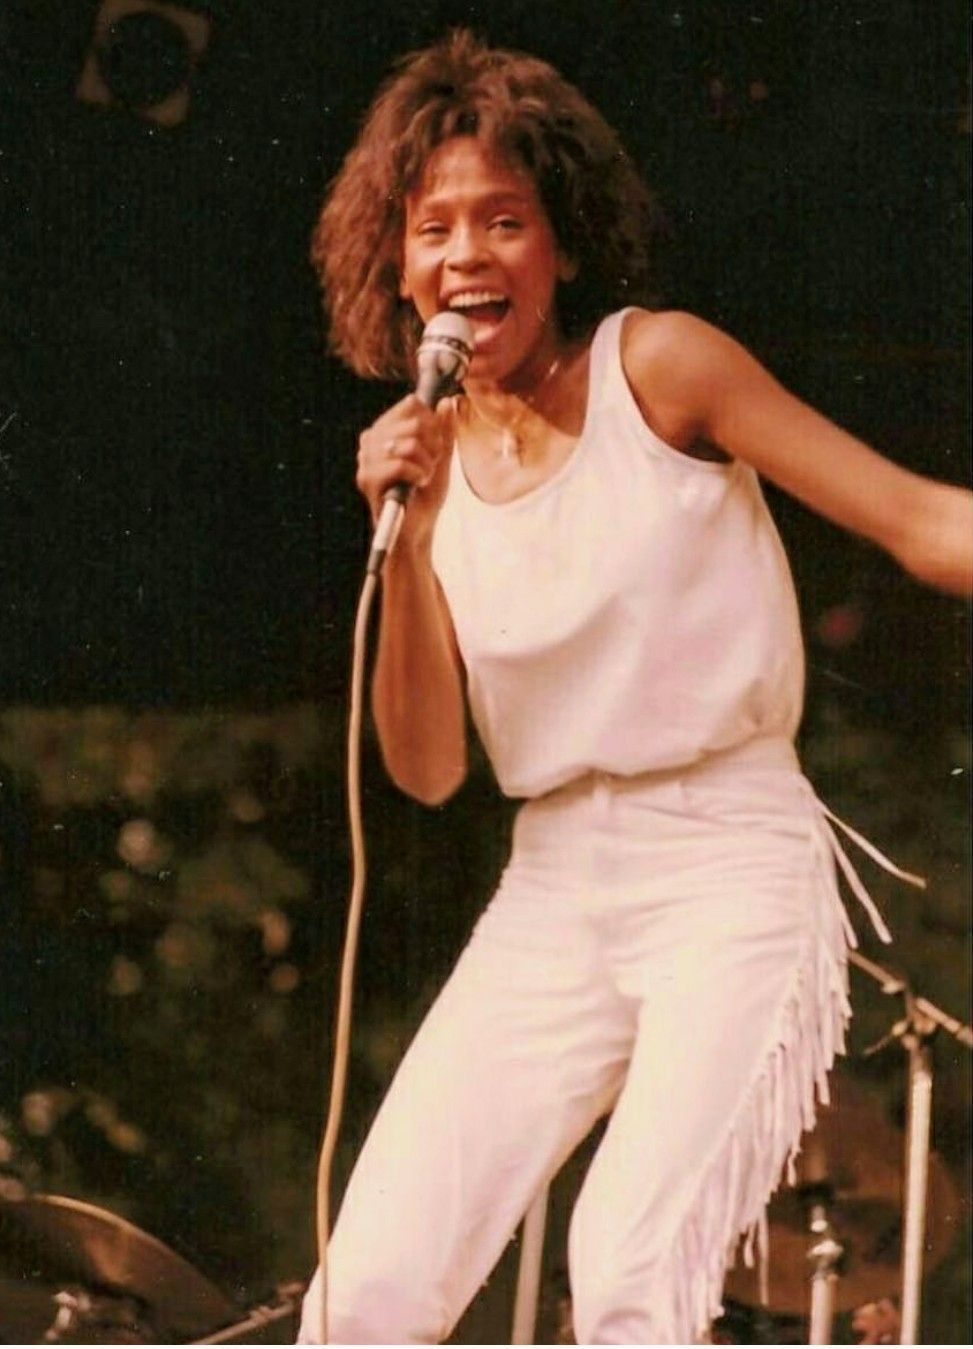 Pin by Cherelle Peterson on WHITNEY Her life in pictures